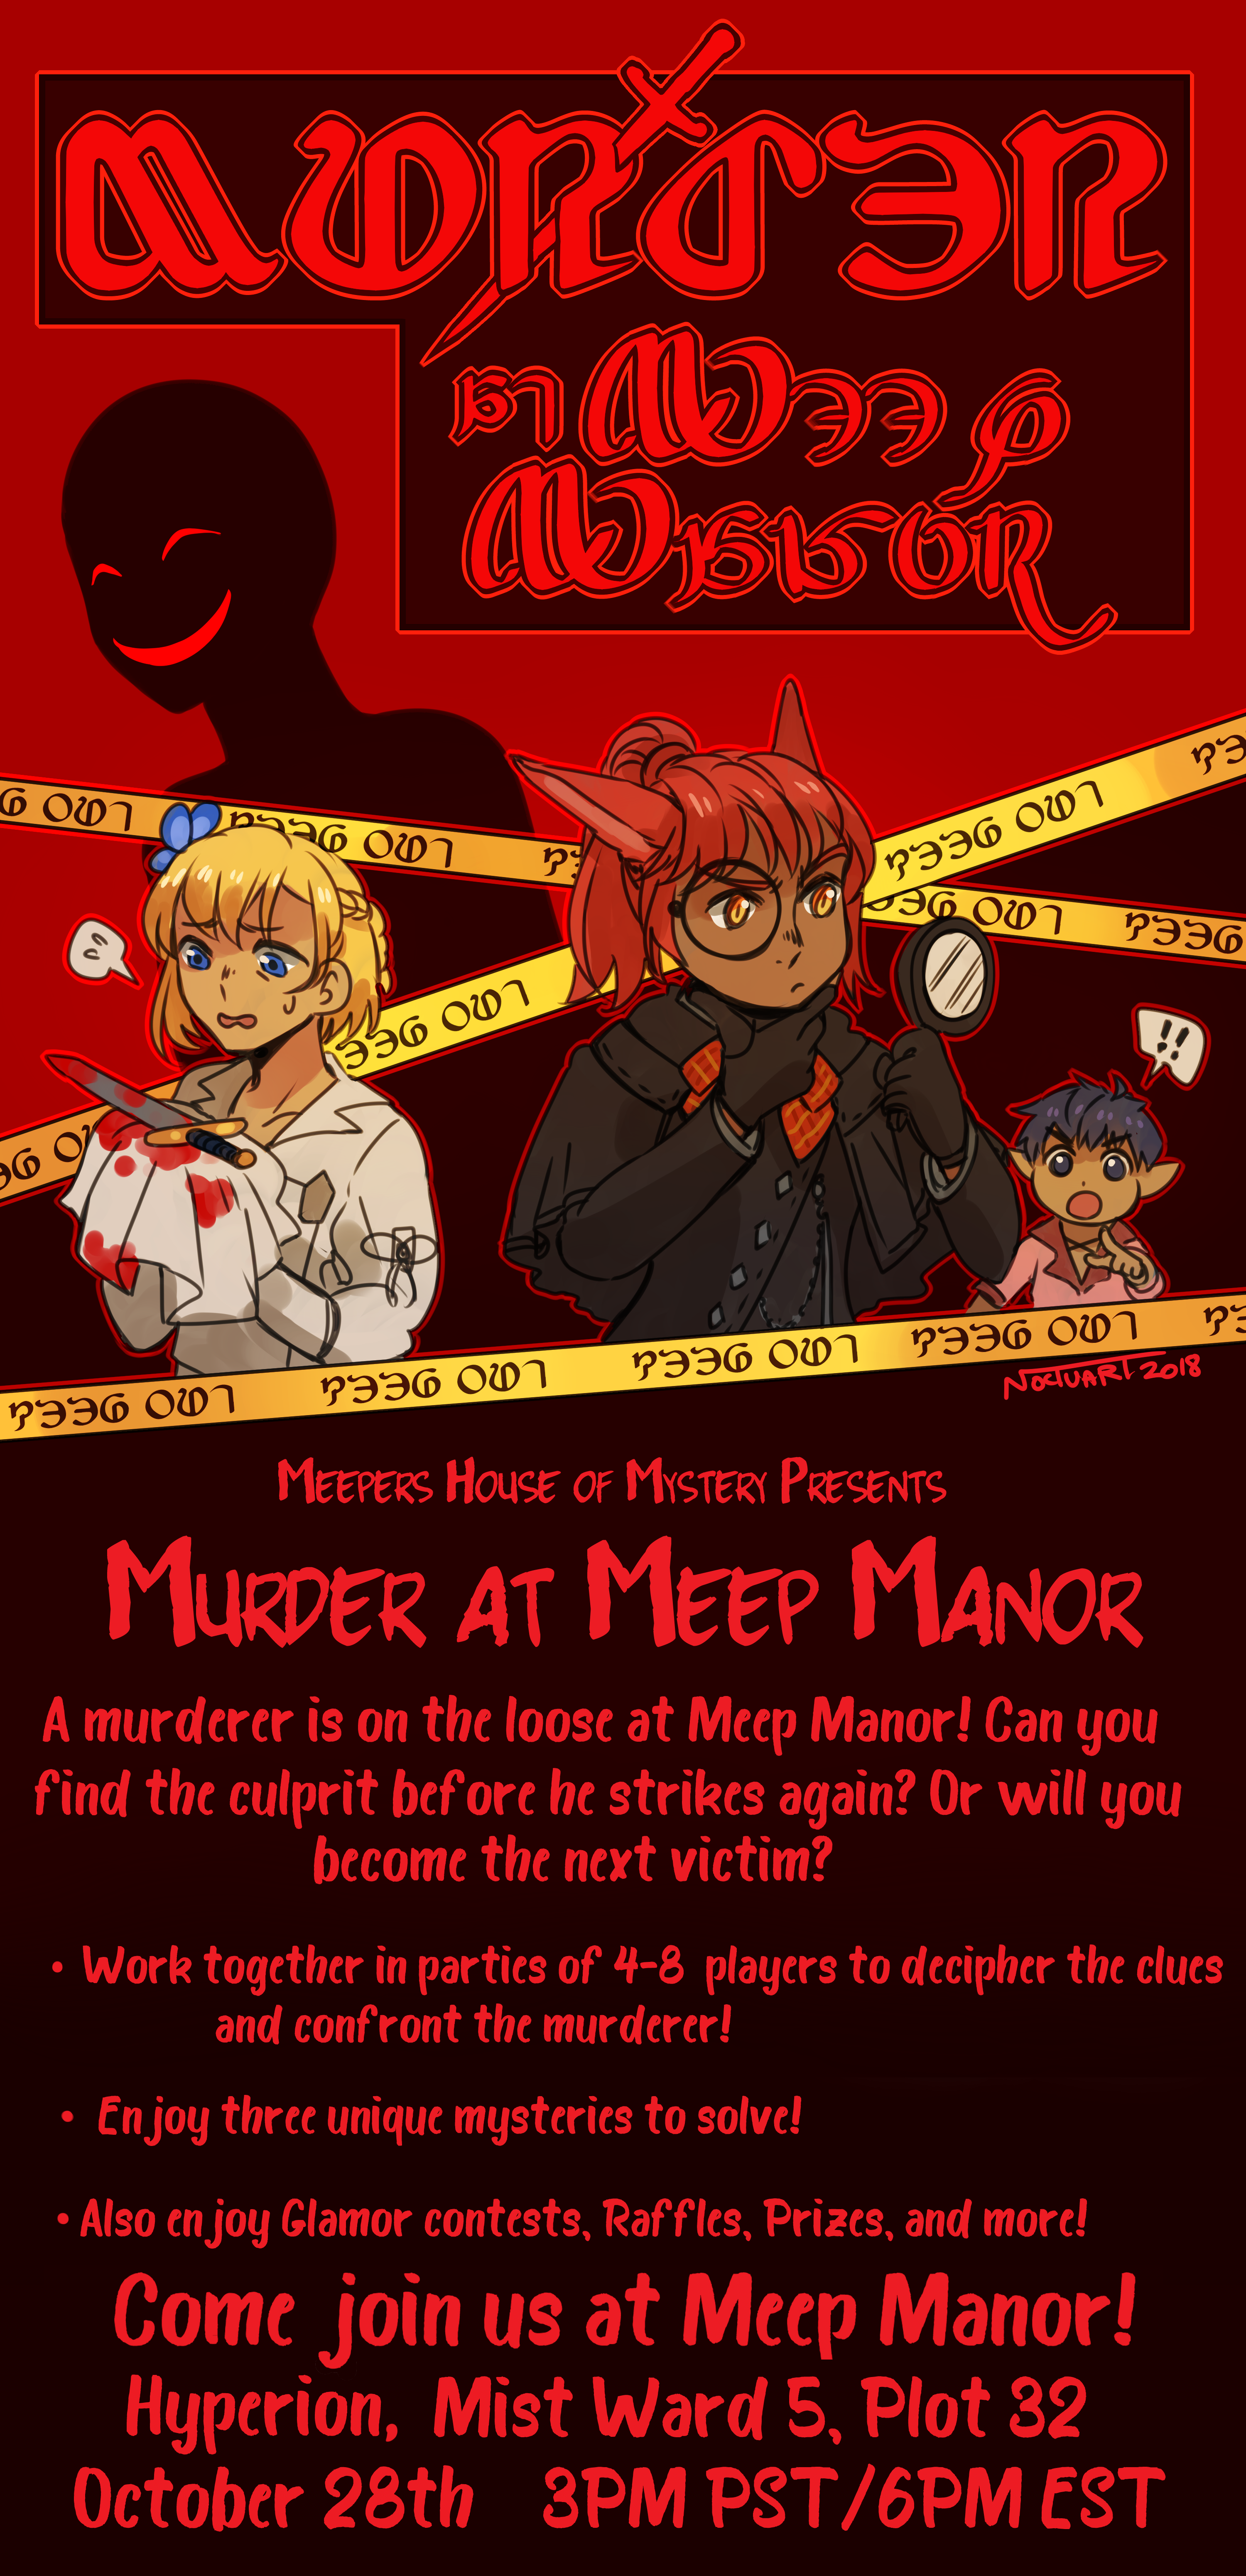 Murder_at_Meep_Manor2_copy.png